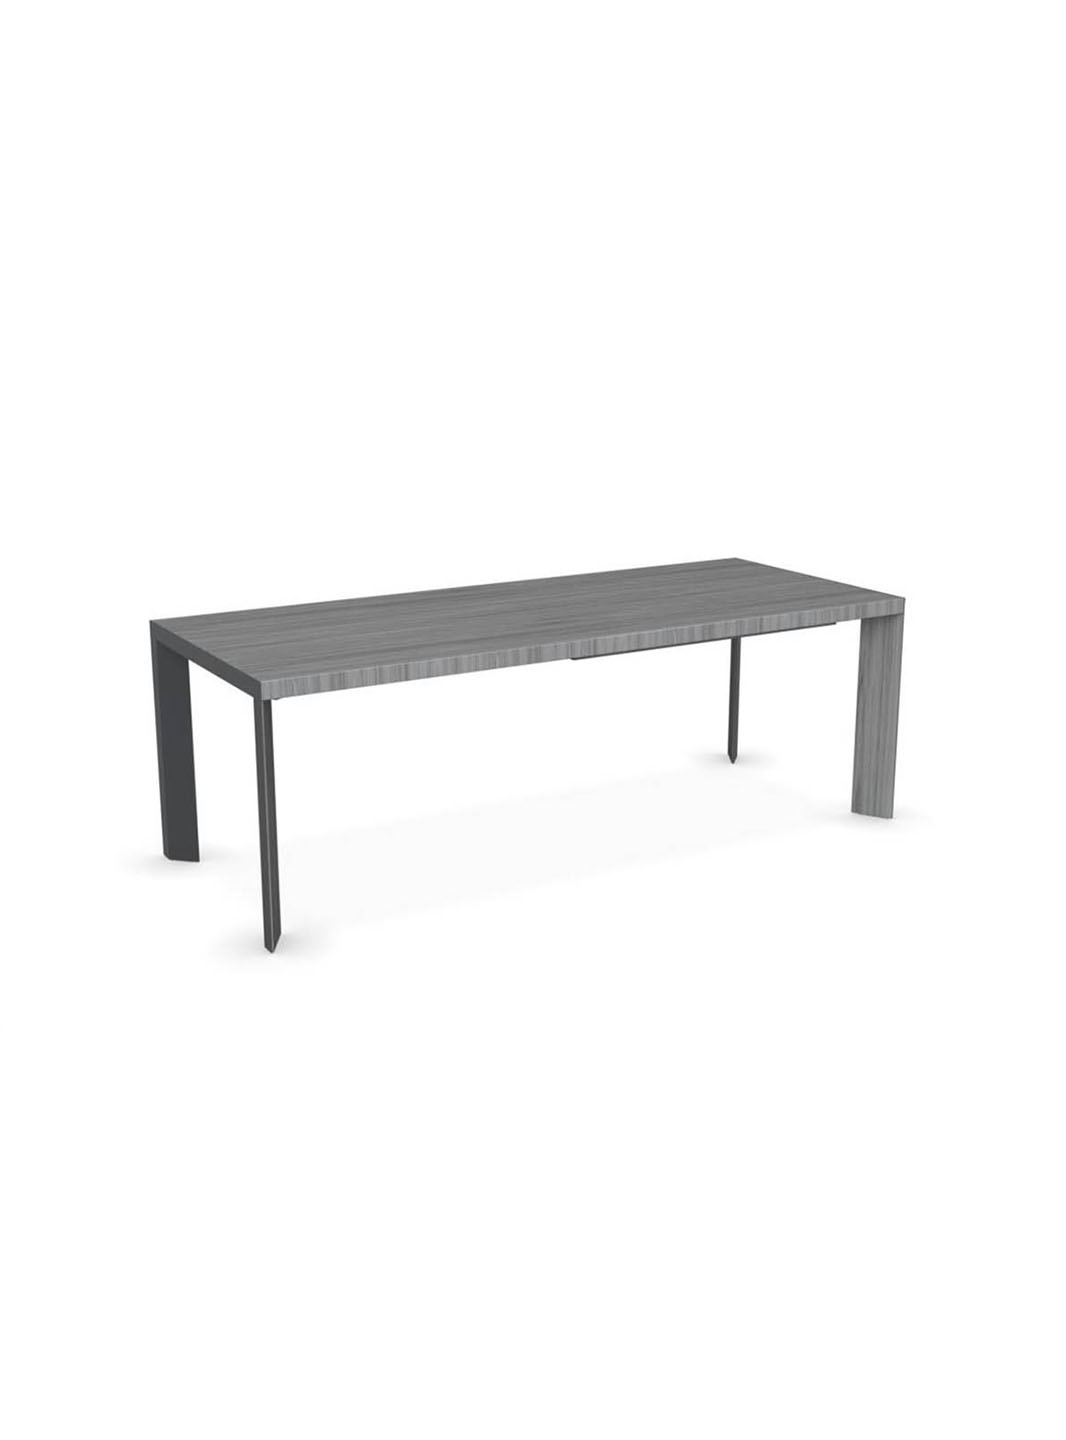 Lam table calligaris cs 4084 mariette clermont for Calligaris soldes